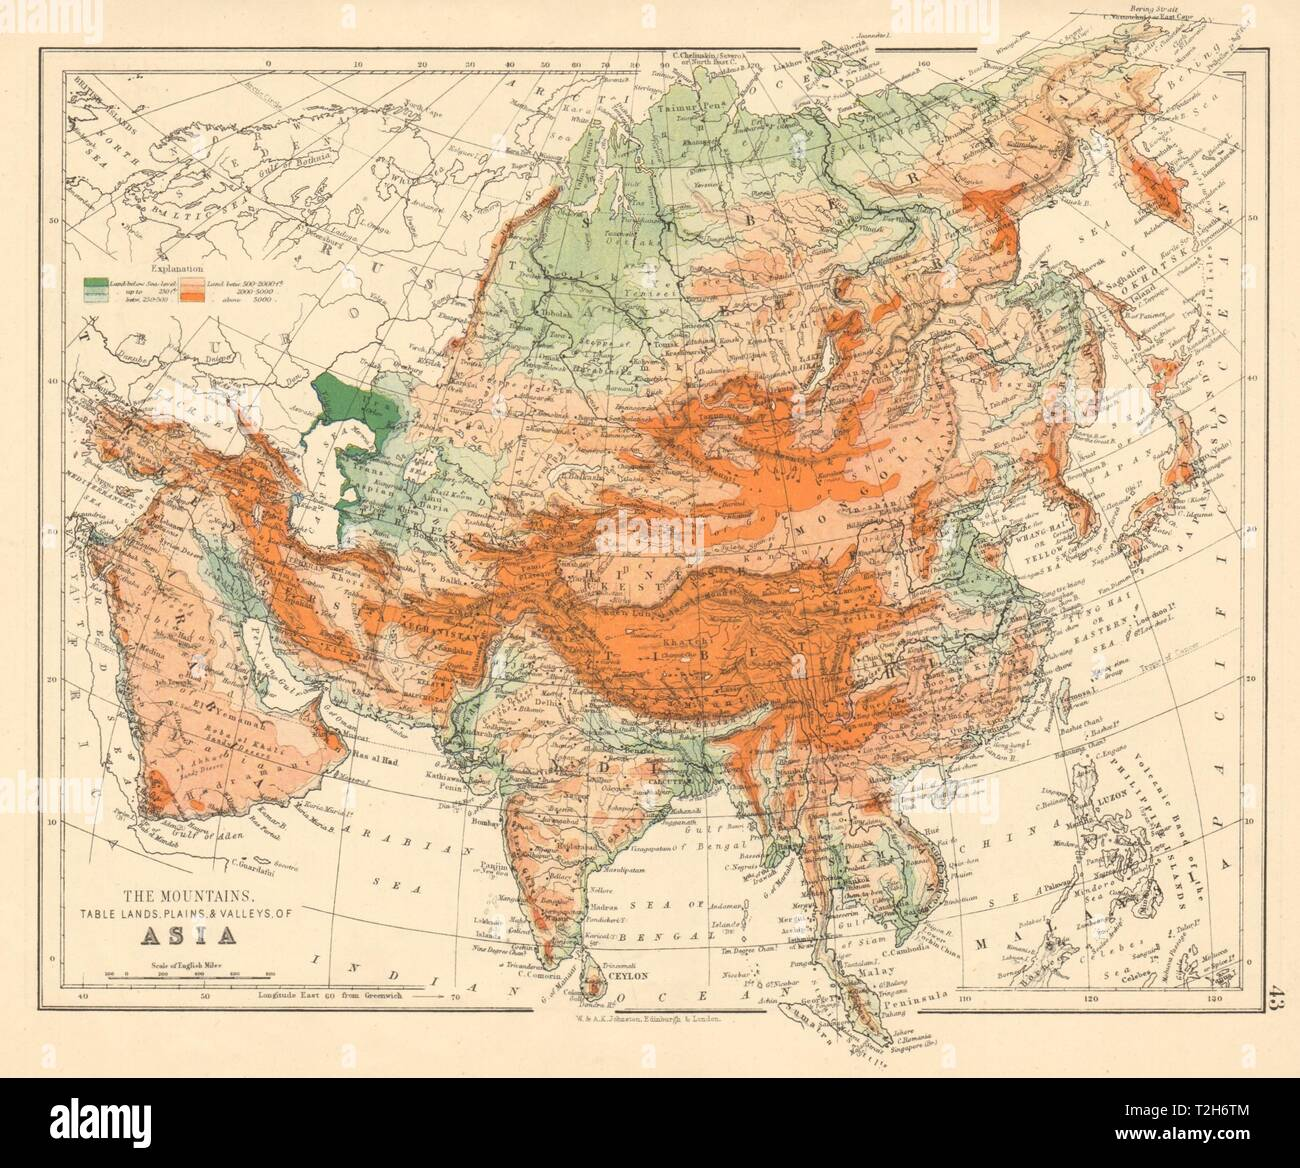 Map Of Asia Mountains.Asia Physical Relief Mountain Heights Ocean Depths Rivers Johnston